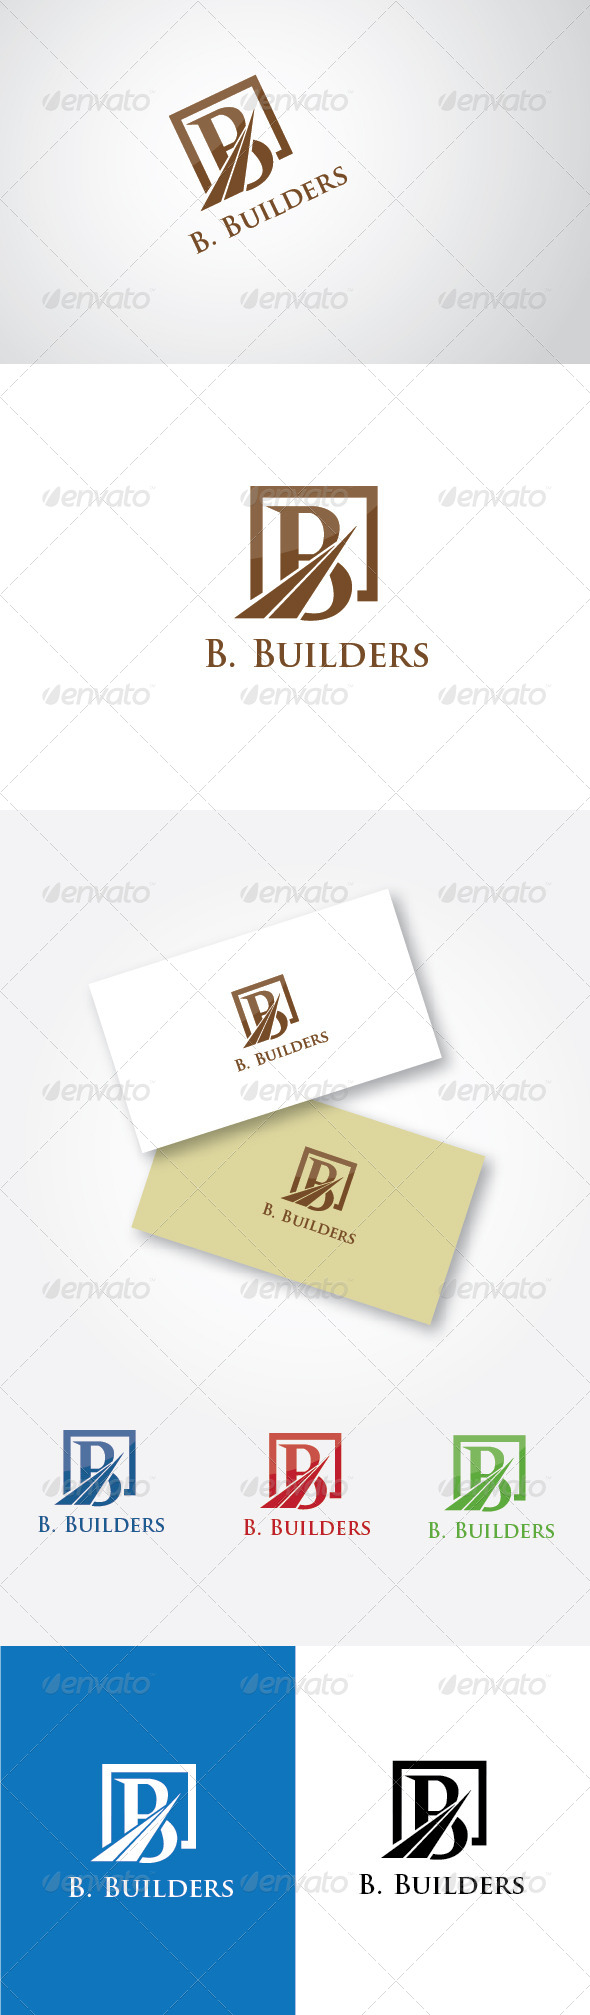 GraphicRiver B Builders 5190425